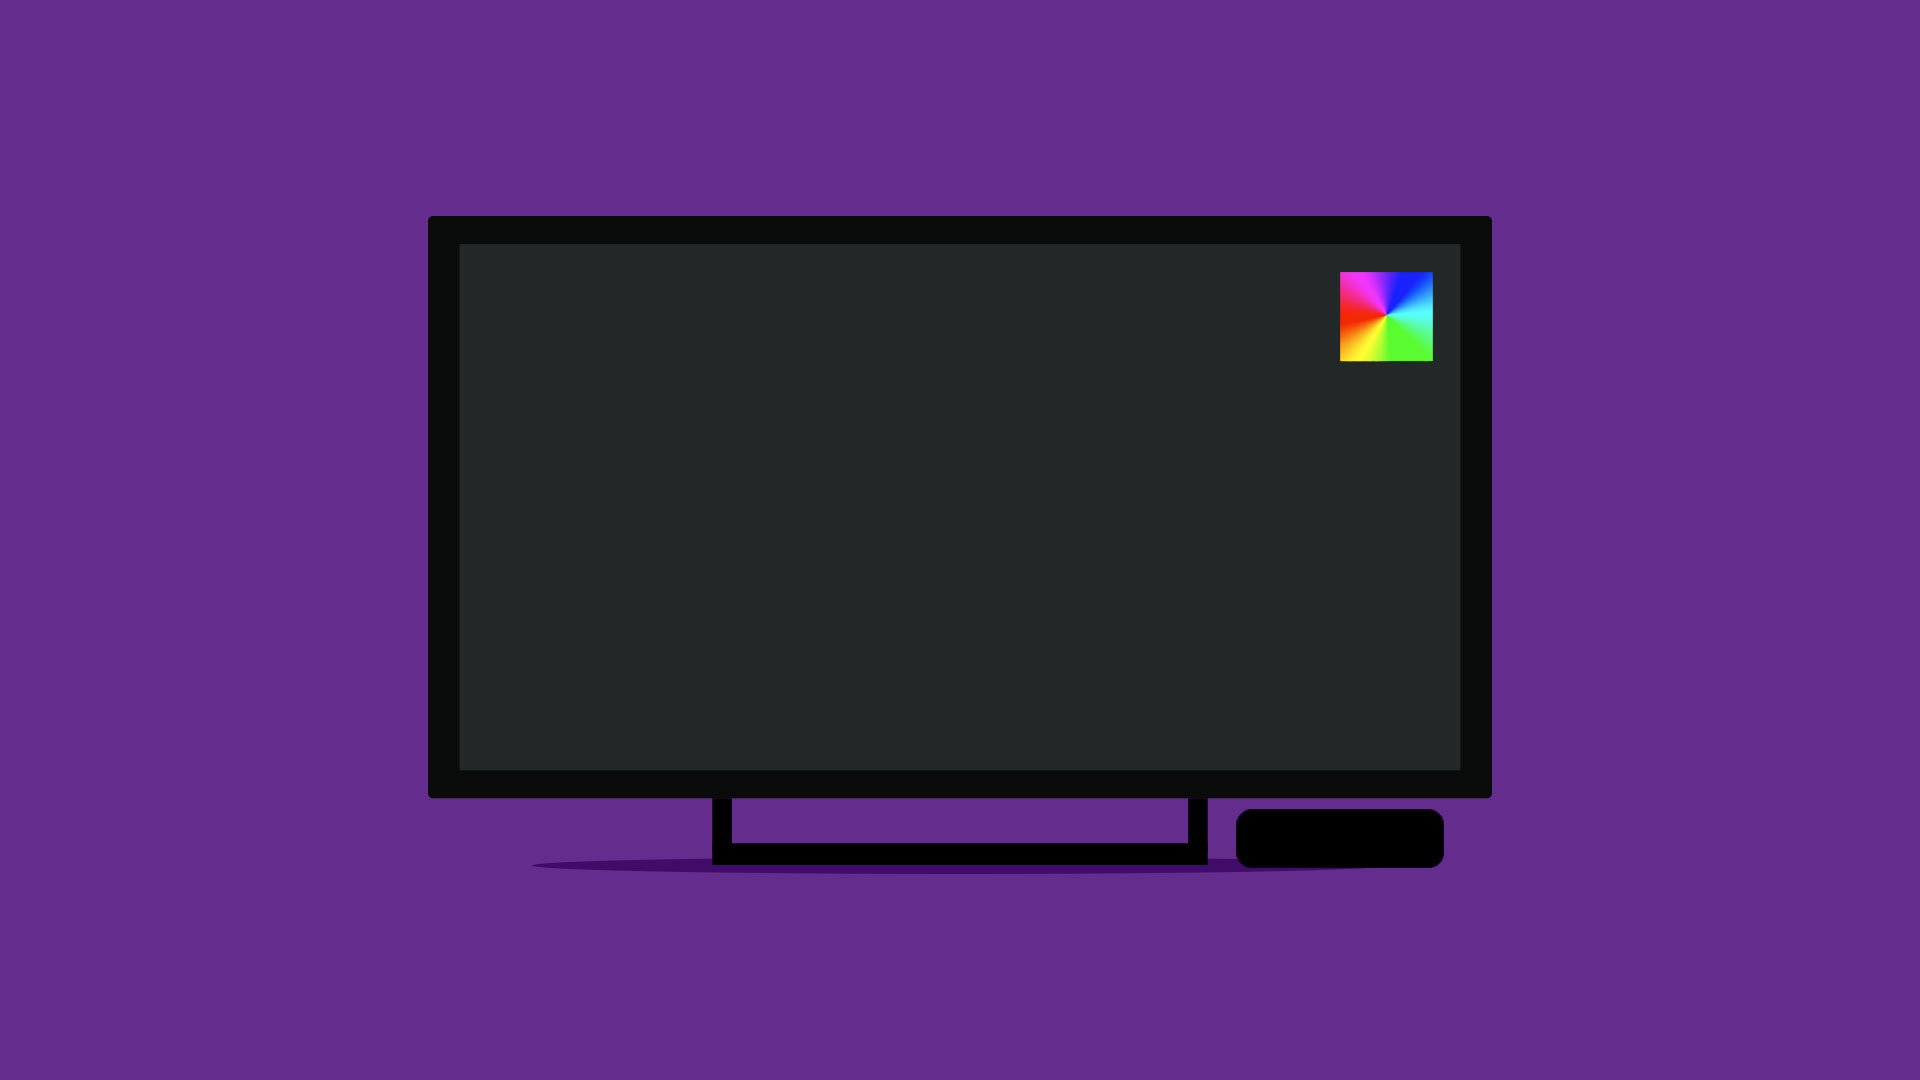 This image is of a rainbow square alert with the Raspberry Pi.